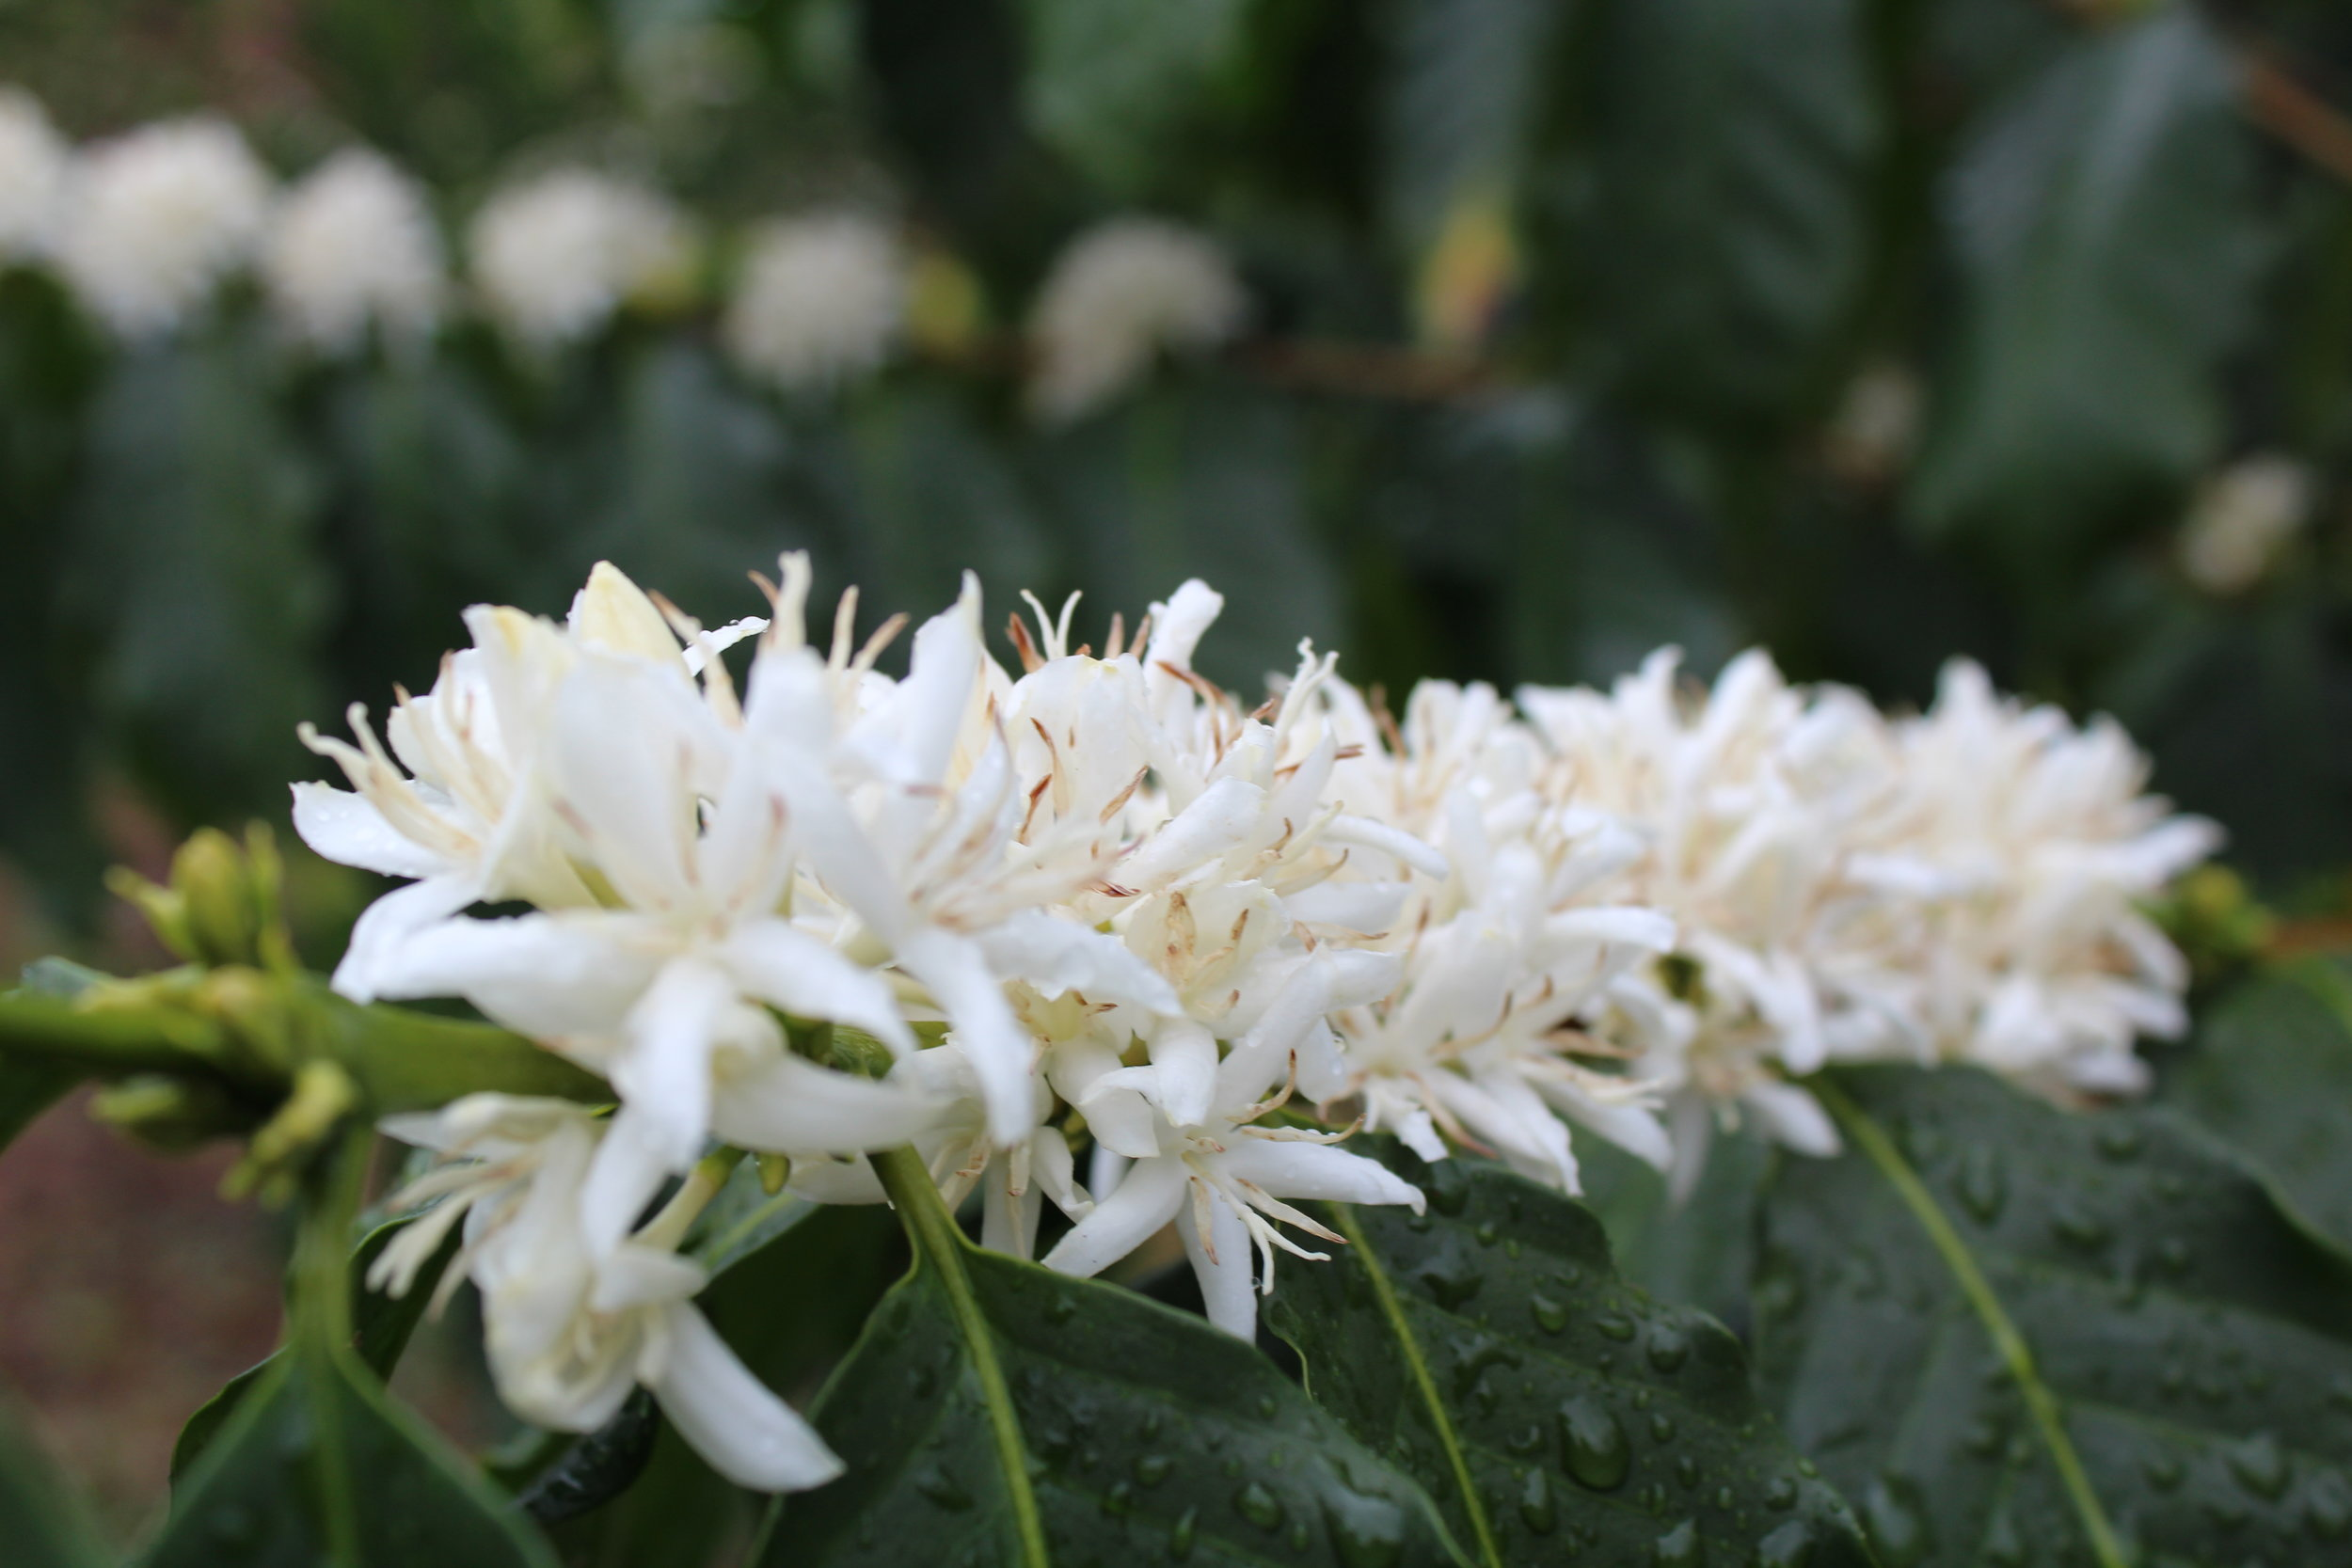 """Kona Coffee flowers a.k.a. """"Kona Snow"""" are pollinated by bees in the spring to make ripe coffee cherry by August. PHOTO: Dayva Keolanui"""